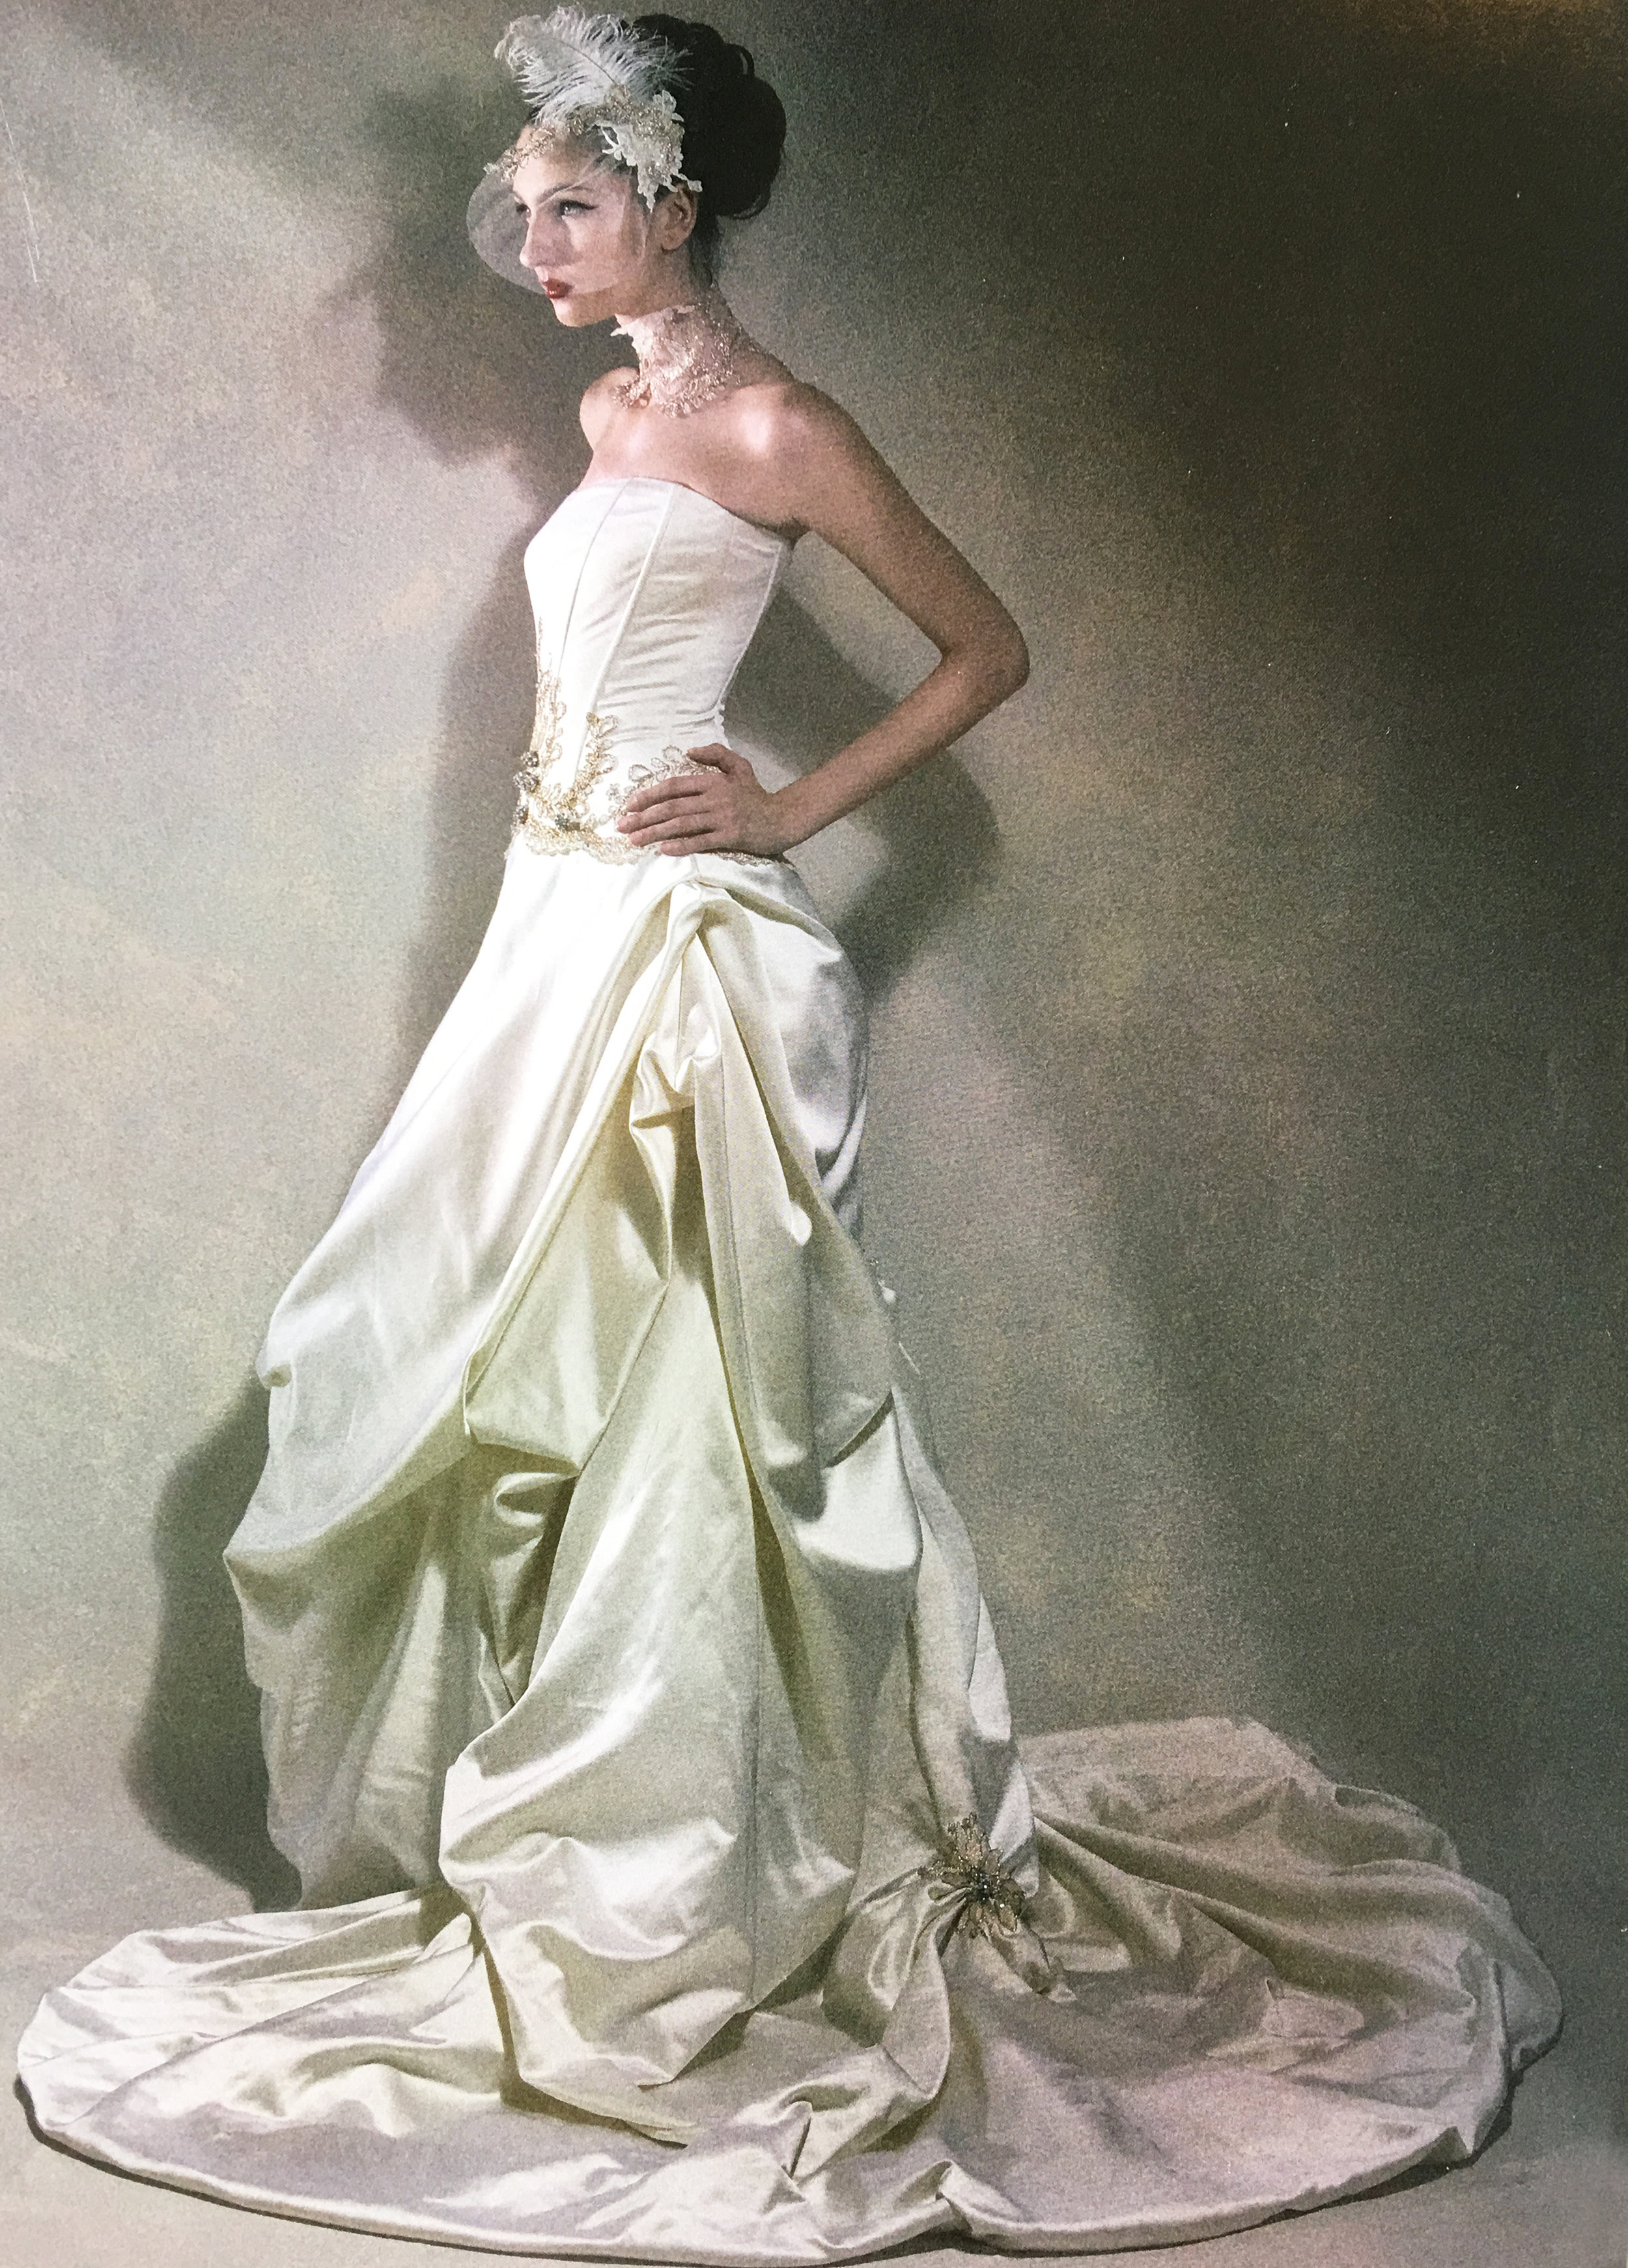 - In 2007, Amanda expanded and opened her second boutique in the heart of the city. This also took a slight shift in direction, as brides began exploring a more simplistic, but detailed design as shown in the ad campaign here. This campaign was widely received for its bold use of details; a combination of design elements, yet portraying a rather clean and elegant look at the same time.